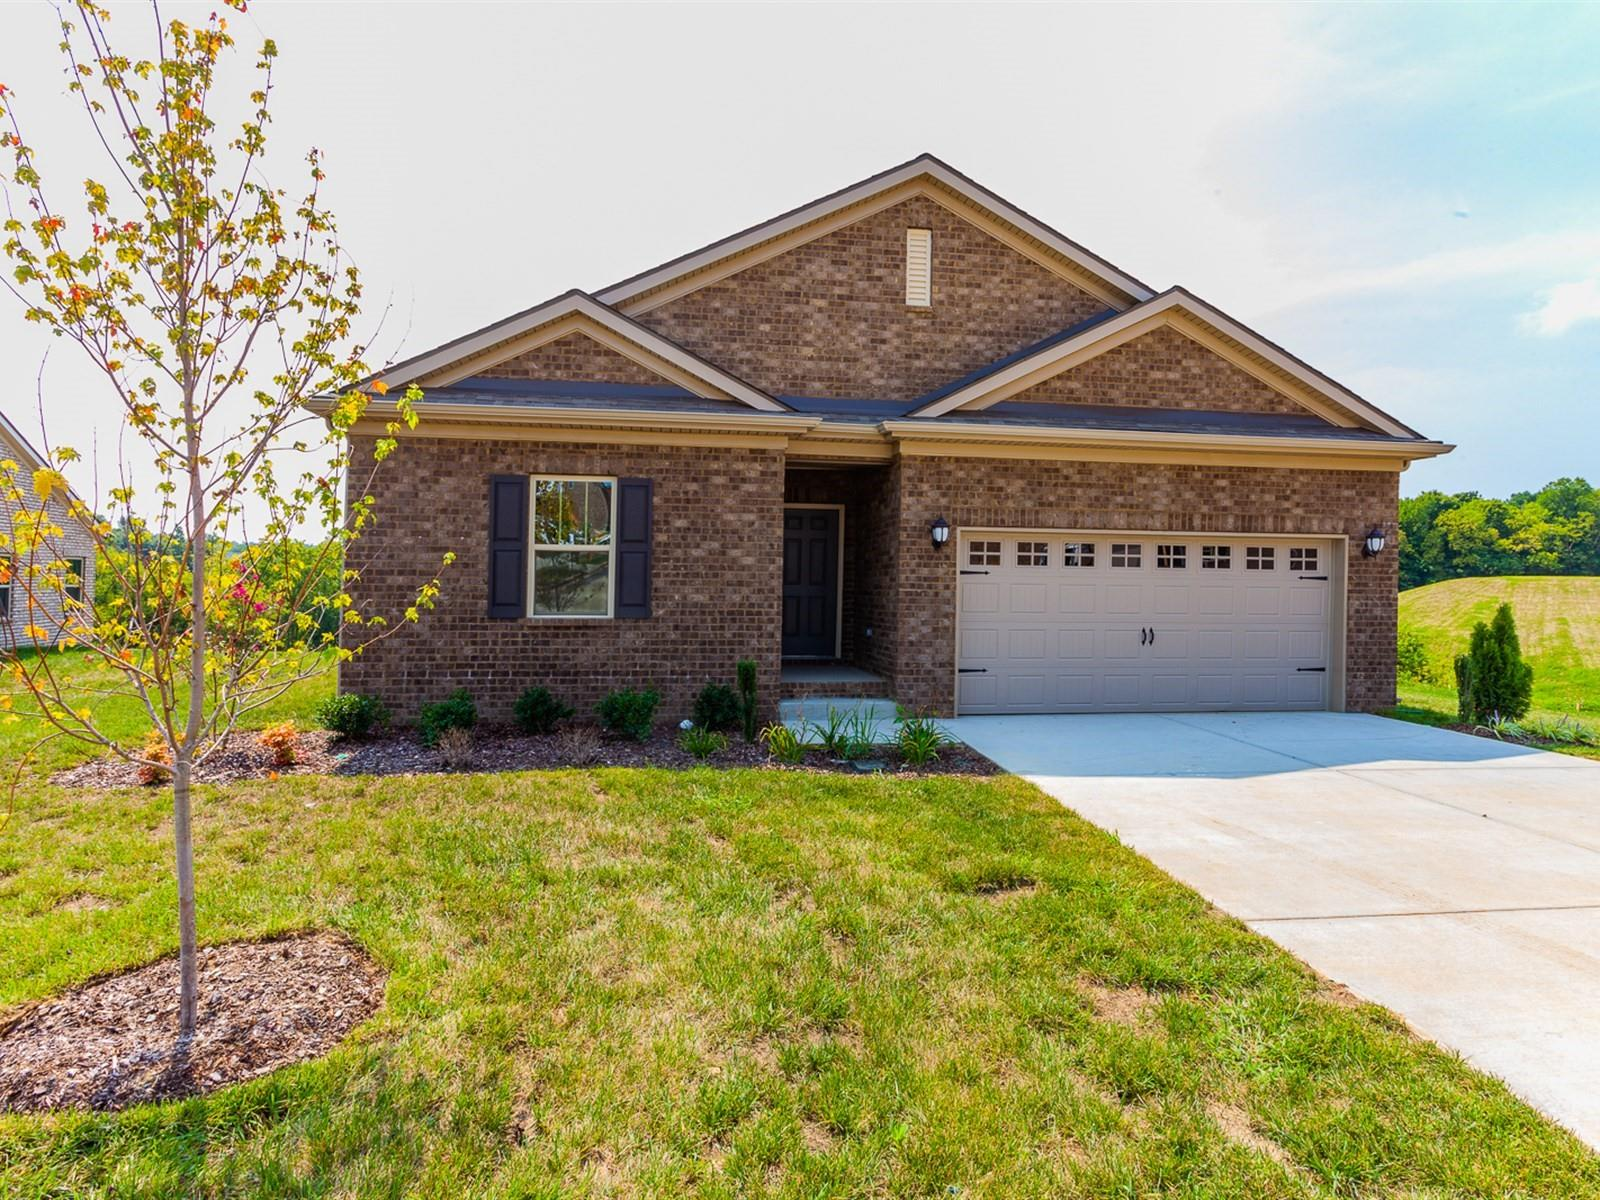 565 Fall Creek Circle, Goodlettsville in Sumner County County, TN 37072 Home for Sale